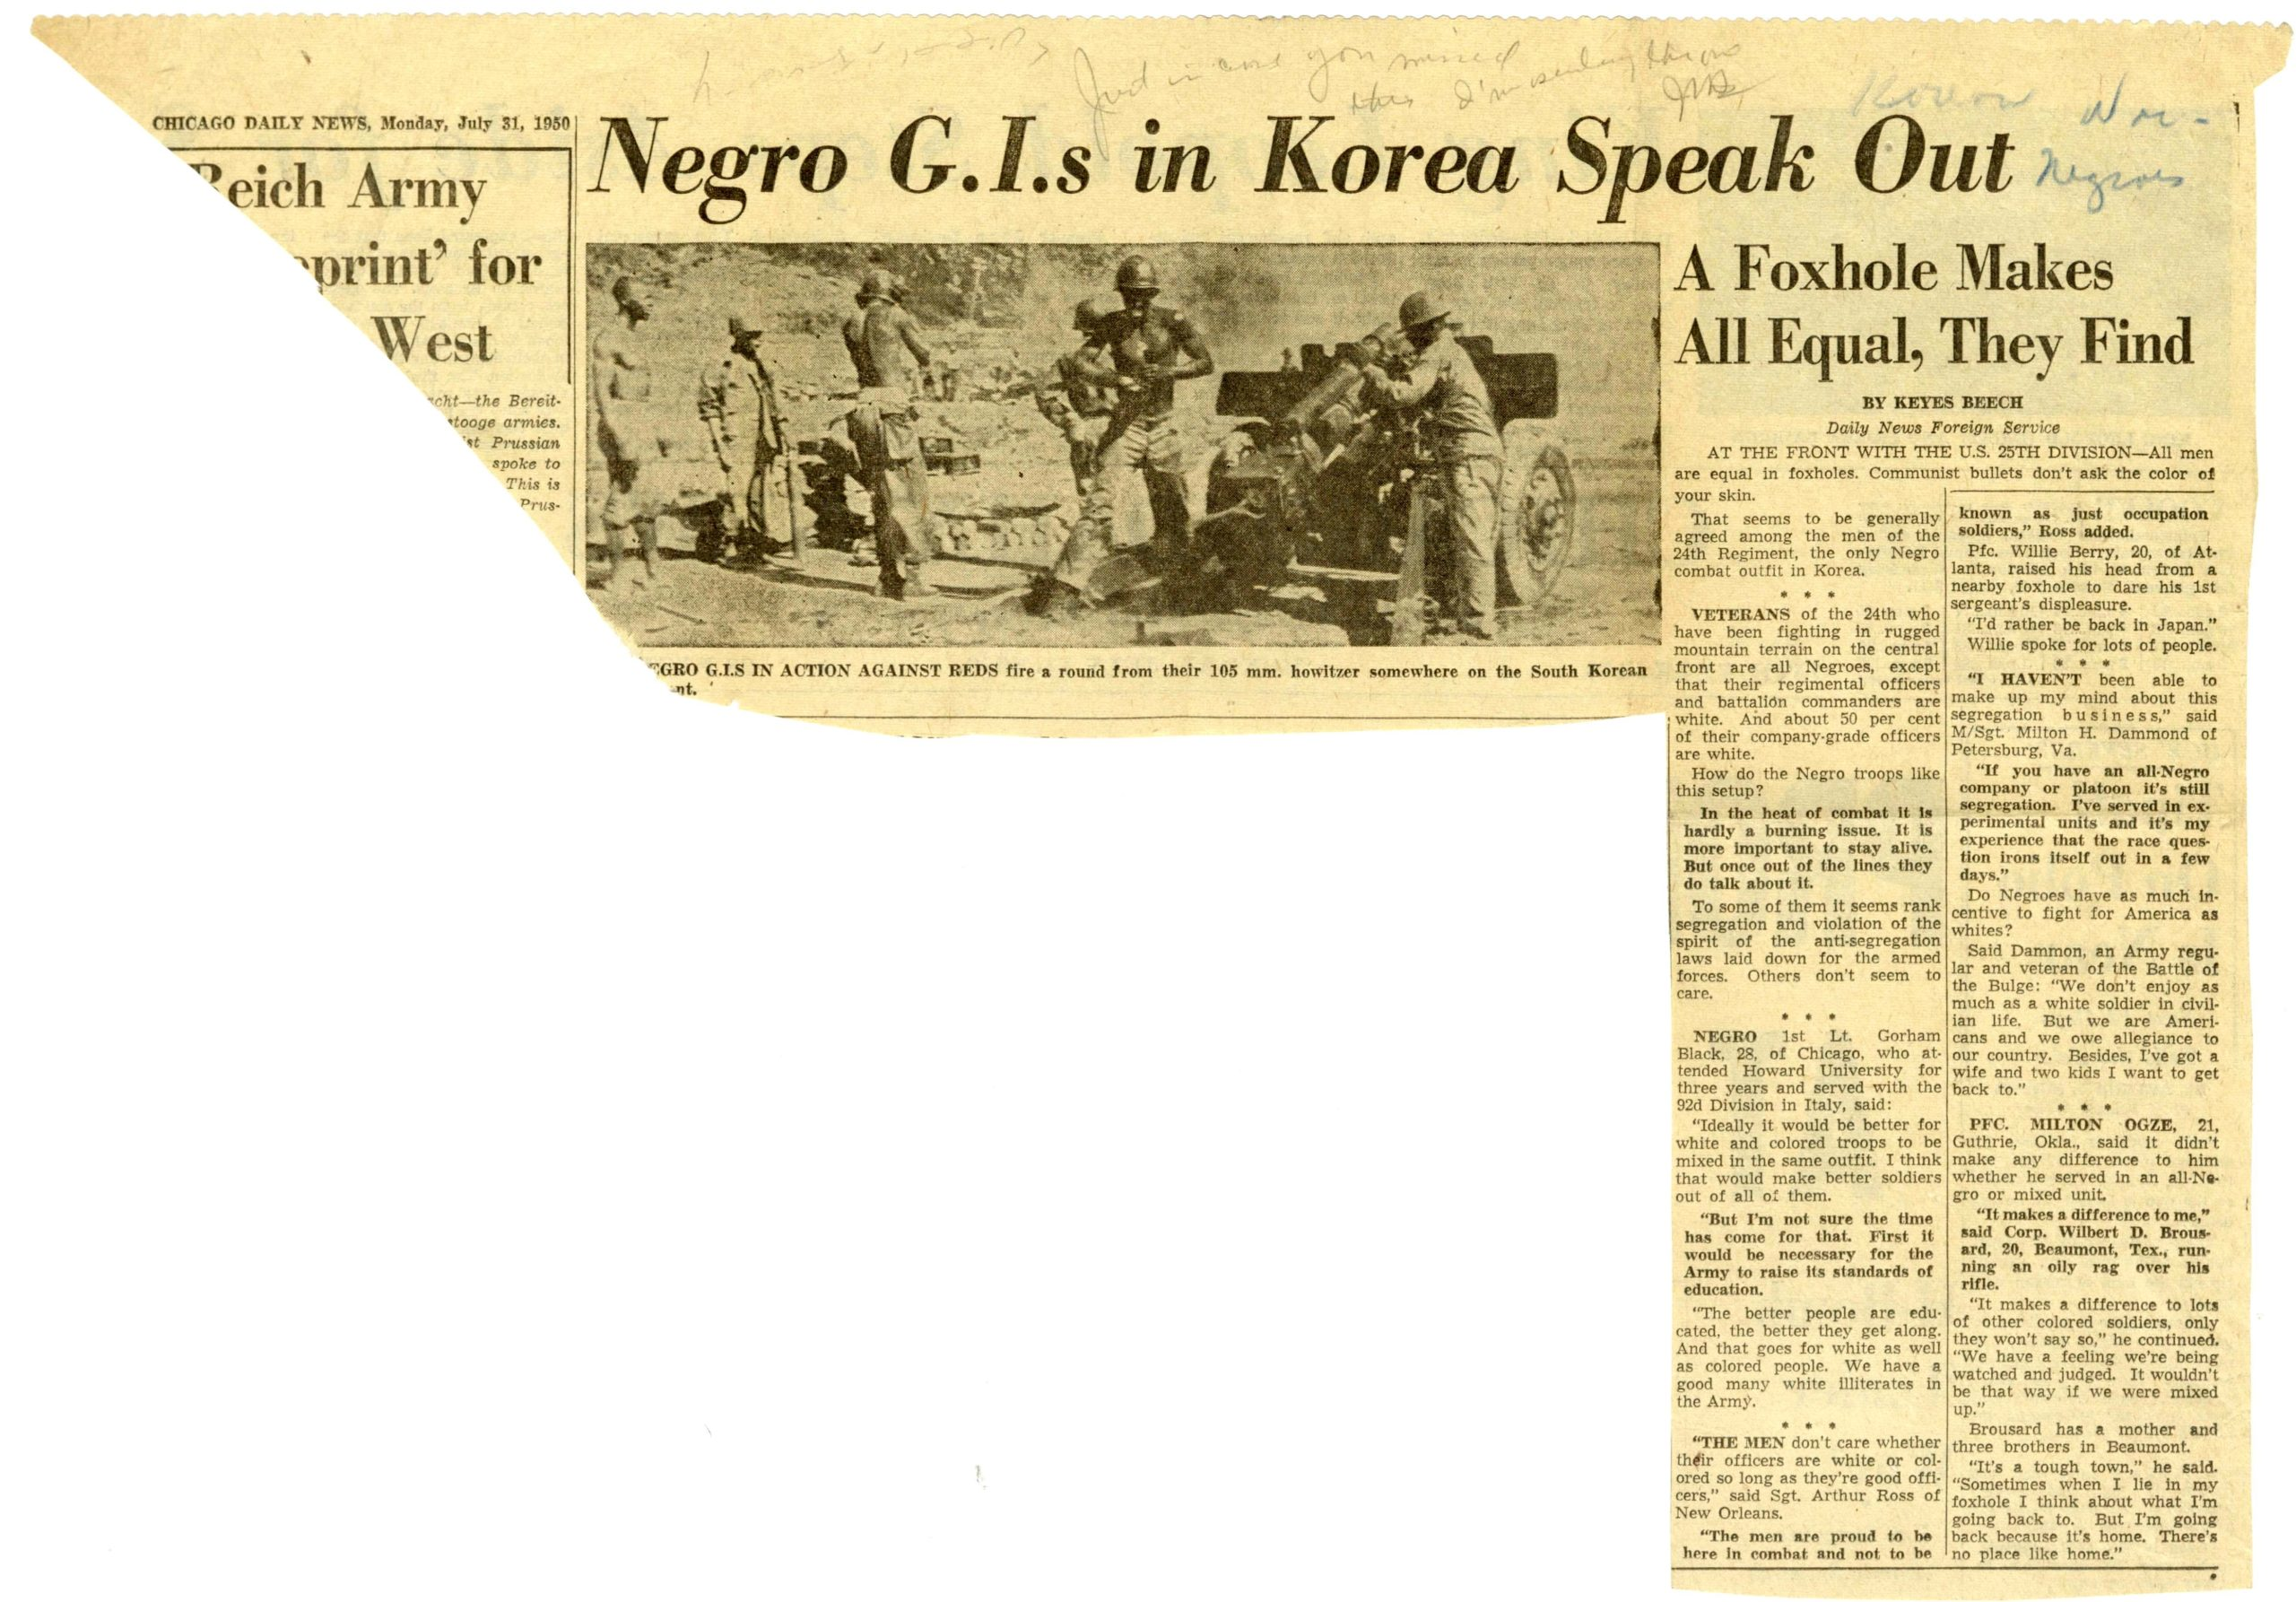 """""""Negro G.I.s in Korea Speak Out"""", Keyes Beech, 1950 July 31, Johnson Publishing Company clipping files collection, 1940-2020"""